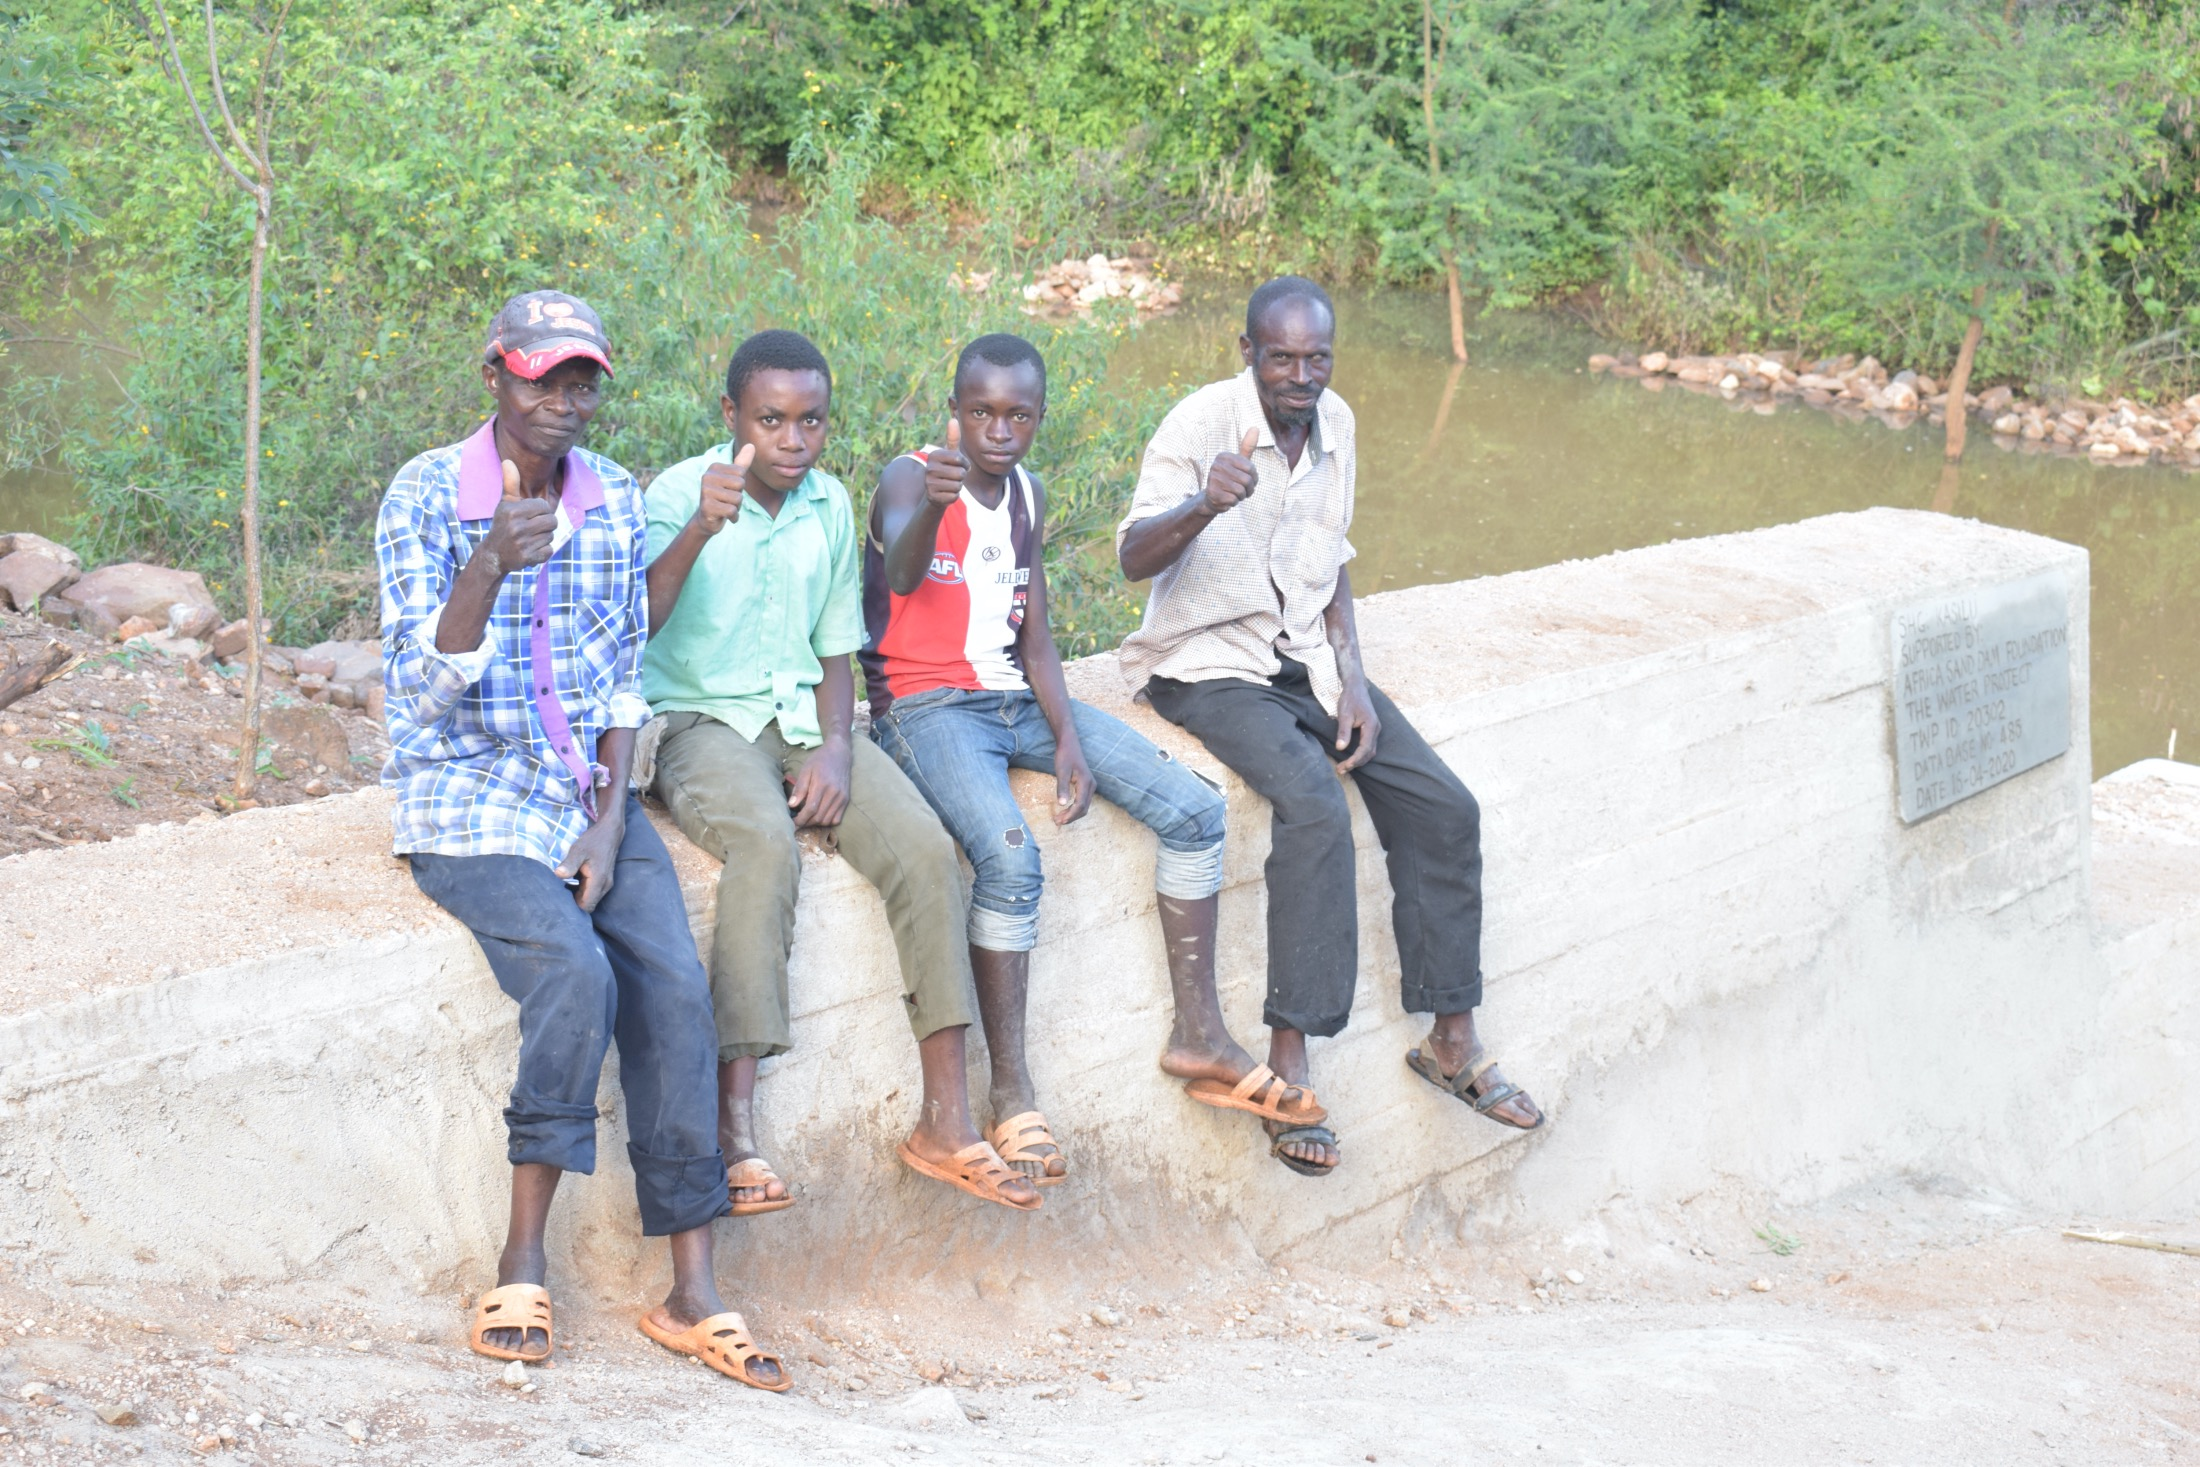 The Water Project : kenya20302-thumbs-up-for-a-new-dam